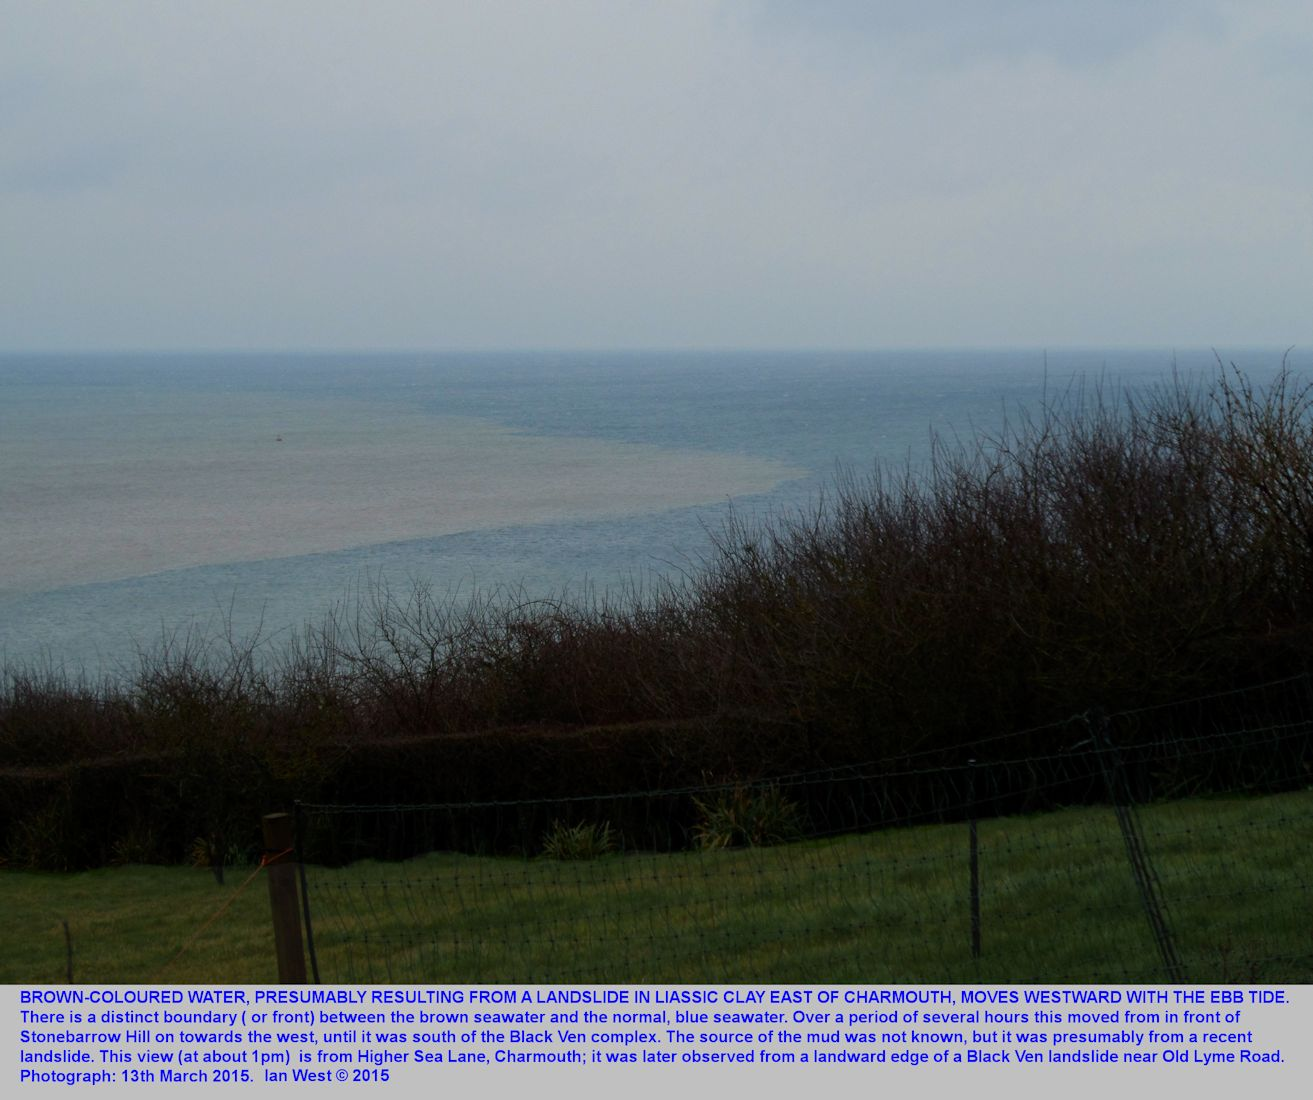 Brown muddy seawater affected by a landslide east of Charmouth and contrasting with blue water further west, Charmouth, Dorset, 13th March 2015